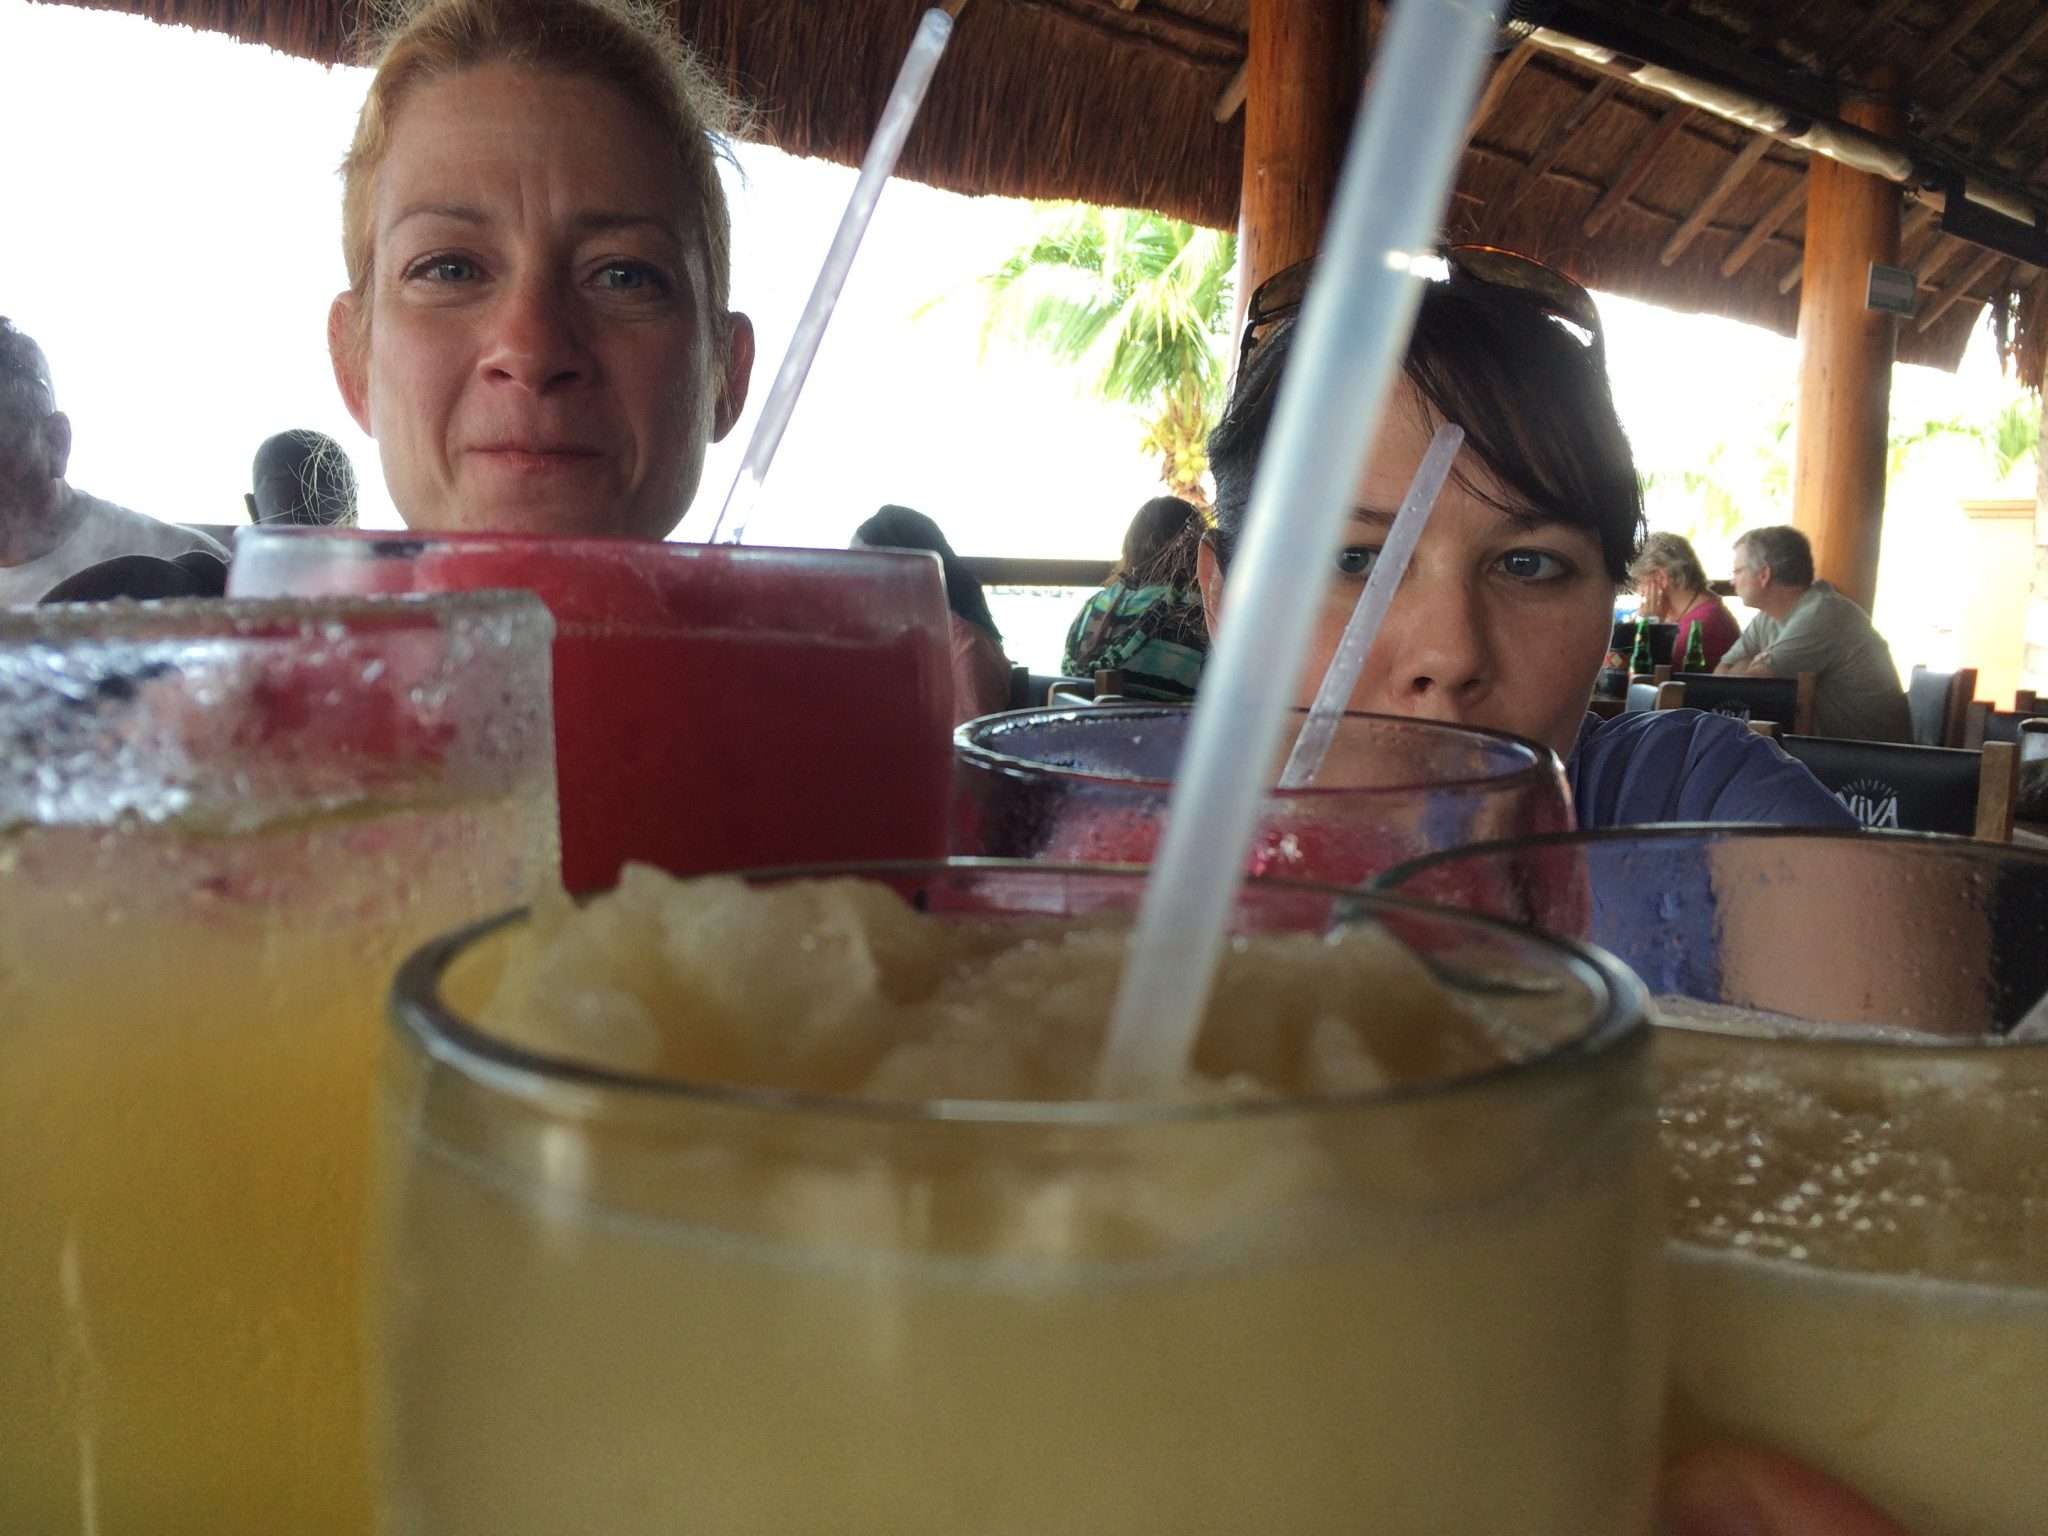 A day off the ship - Mexico with Melissa, Alexis, Sabrina and Kally